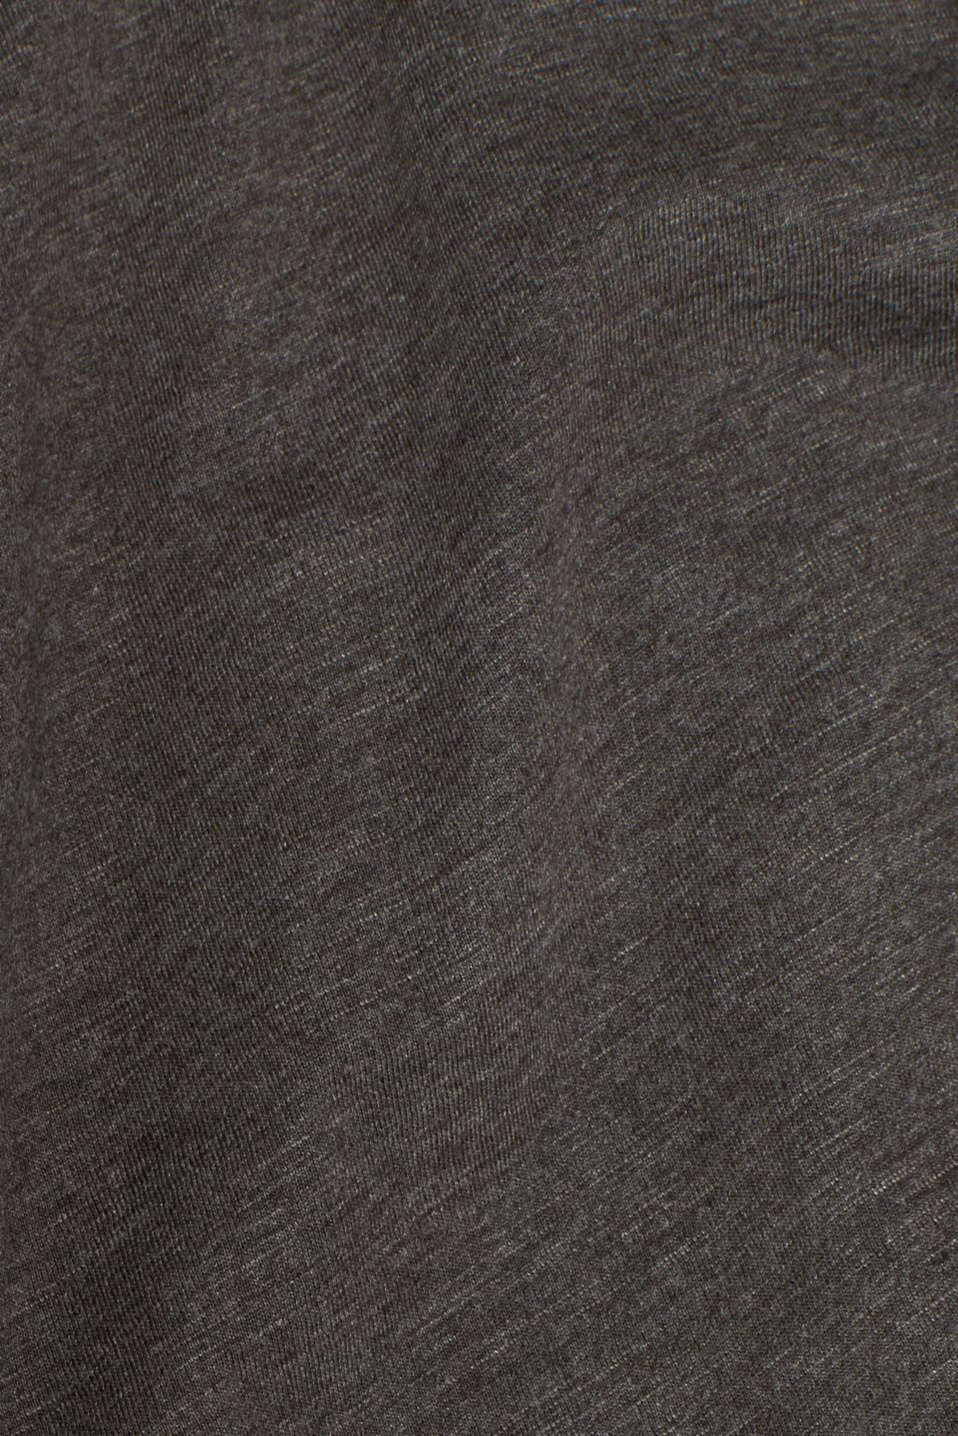 Slub jersey long sleeve top in blended cotton, ANTHRACITE, detail image number 5